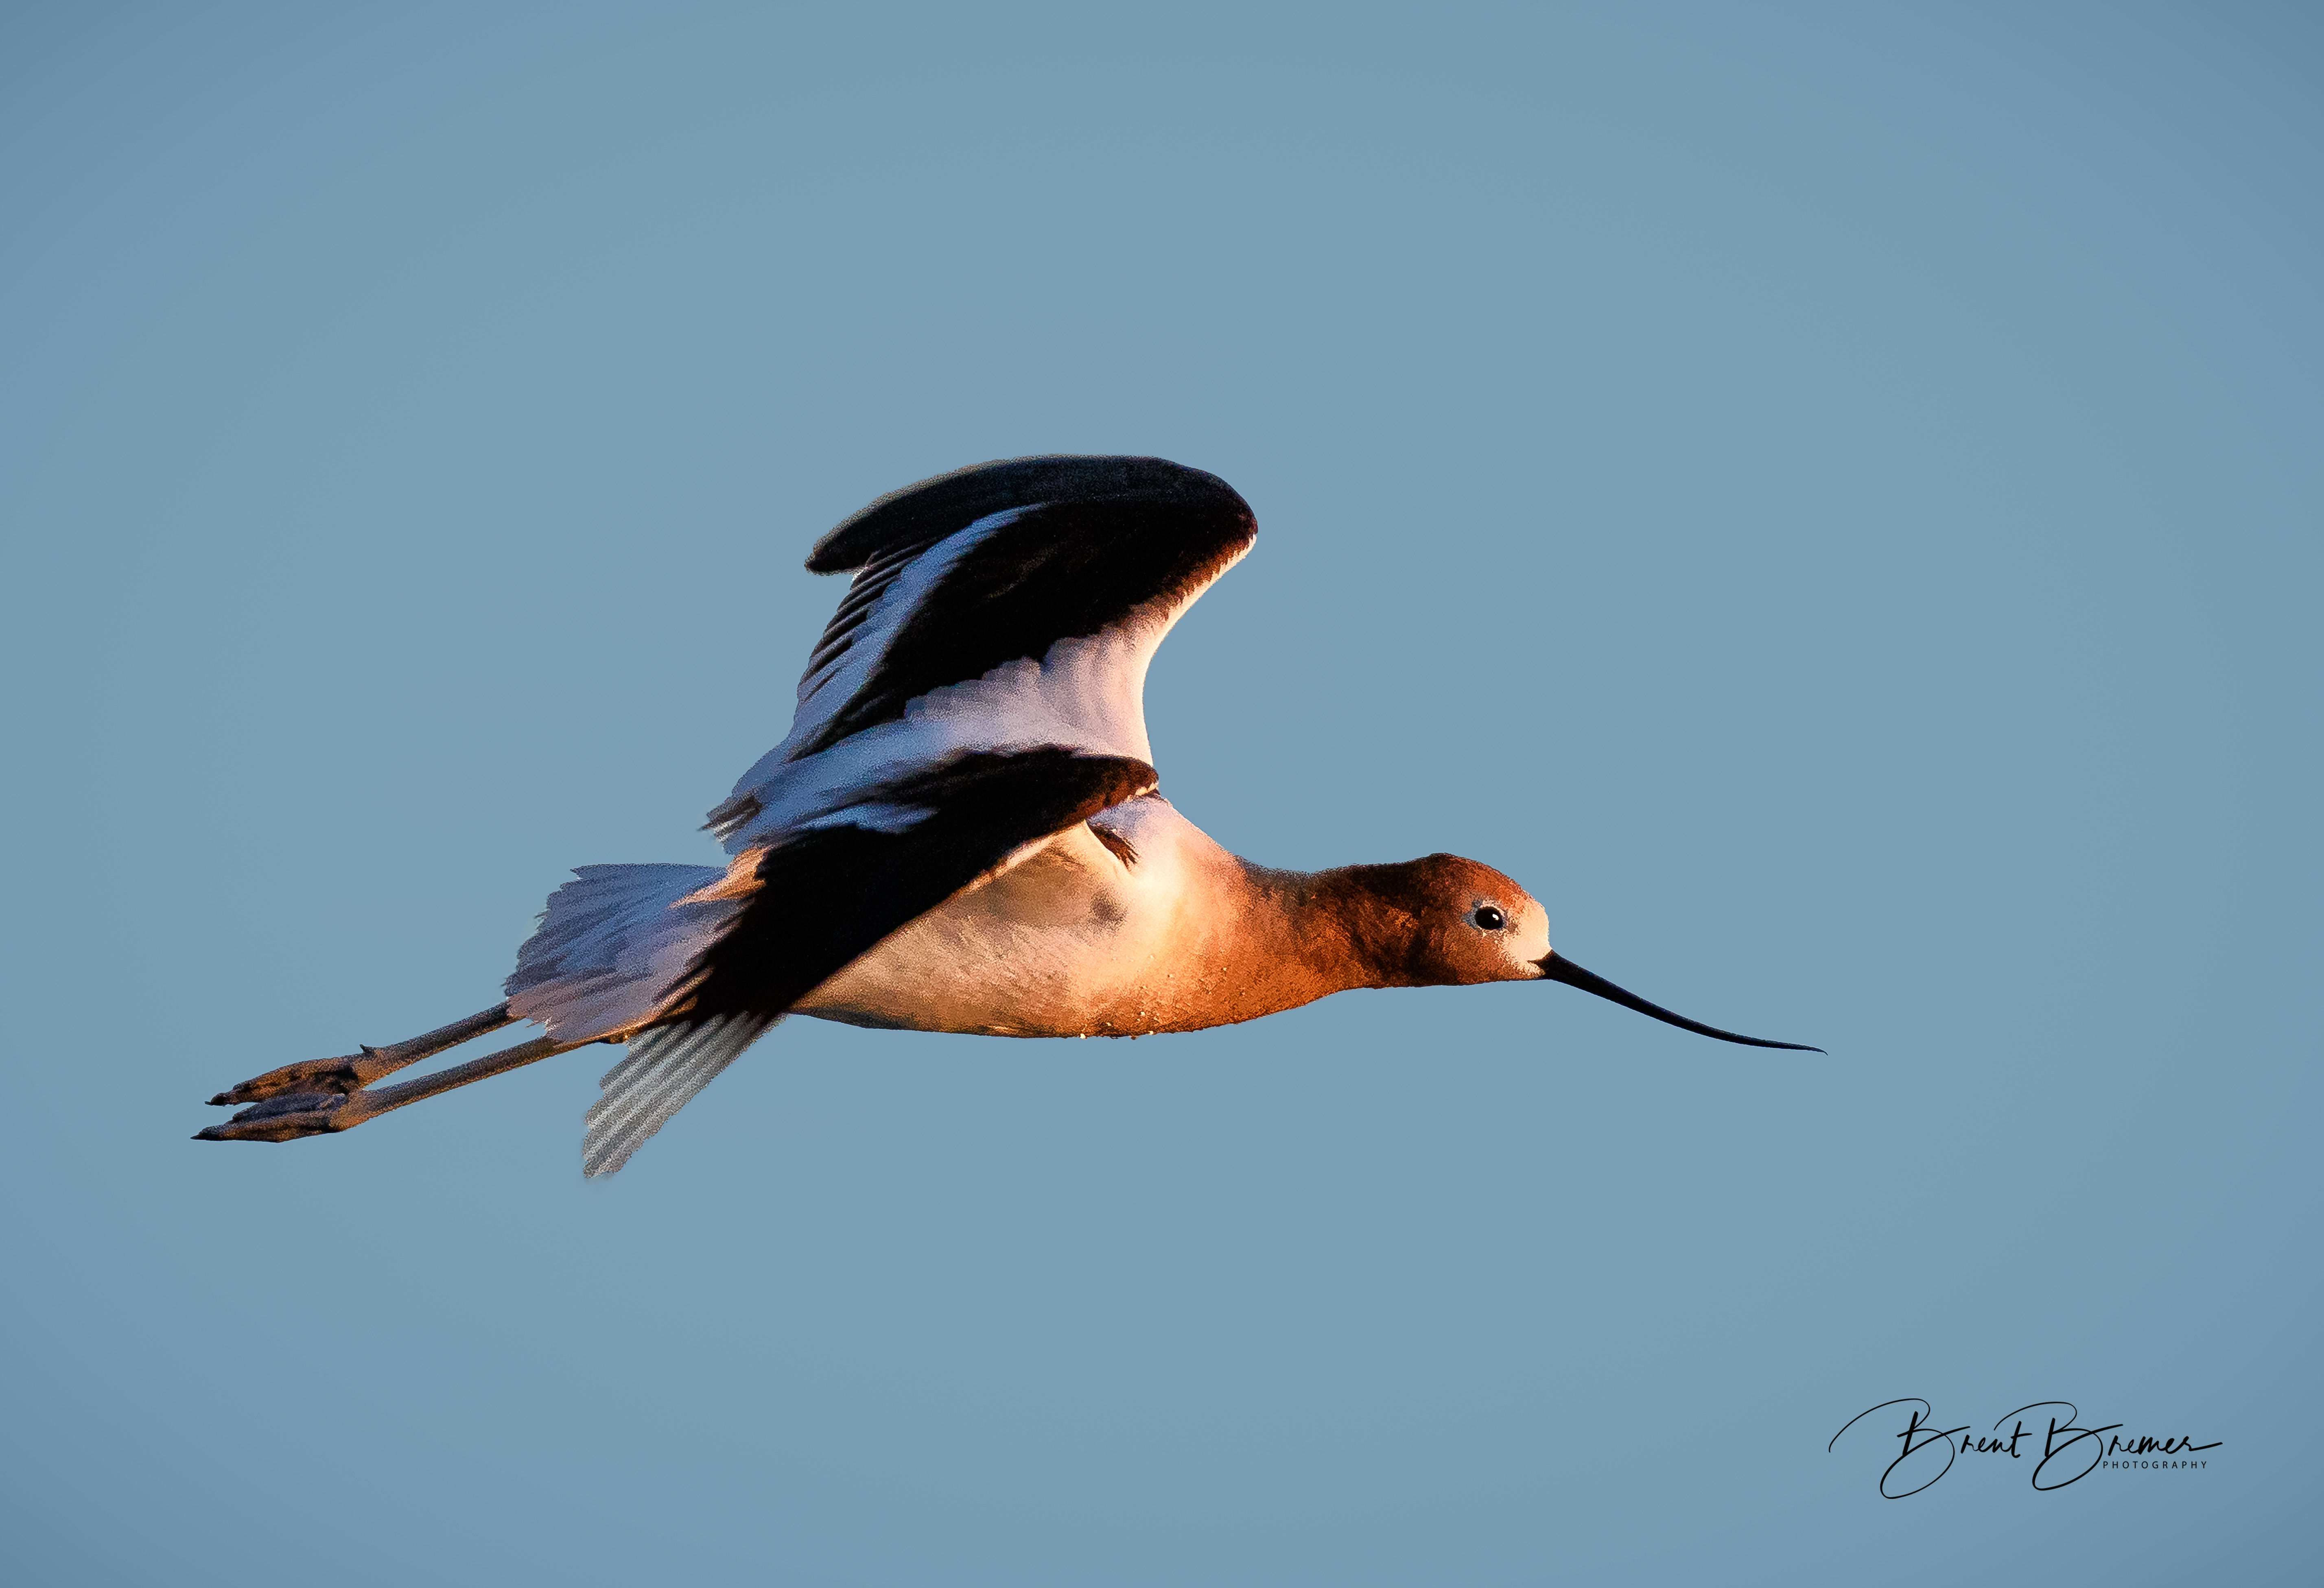 Avocet Wings Up in Flight